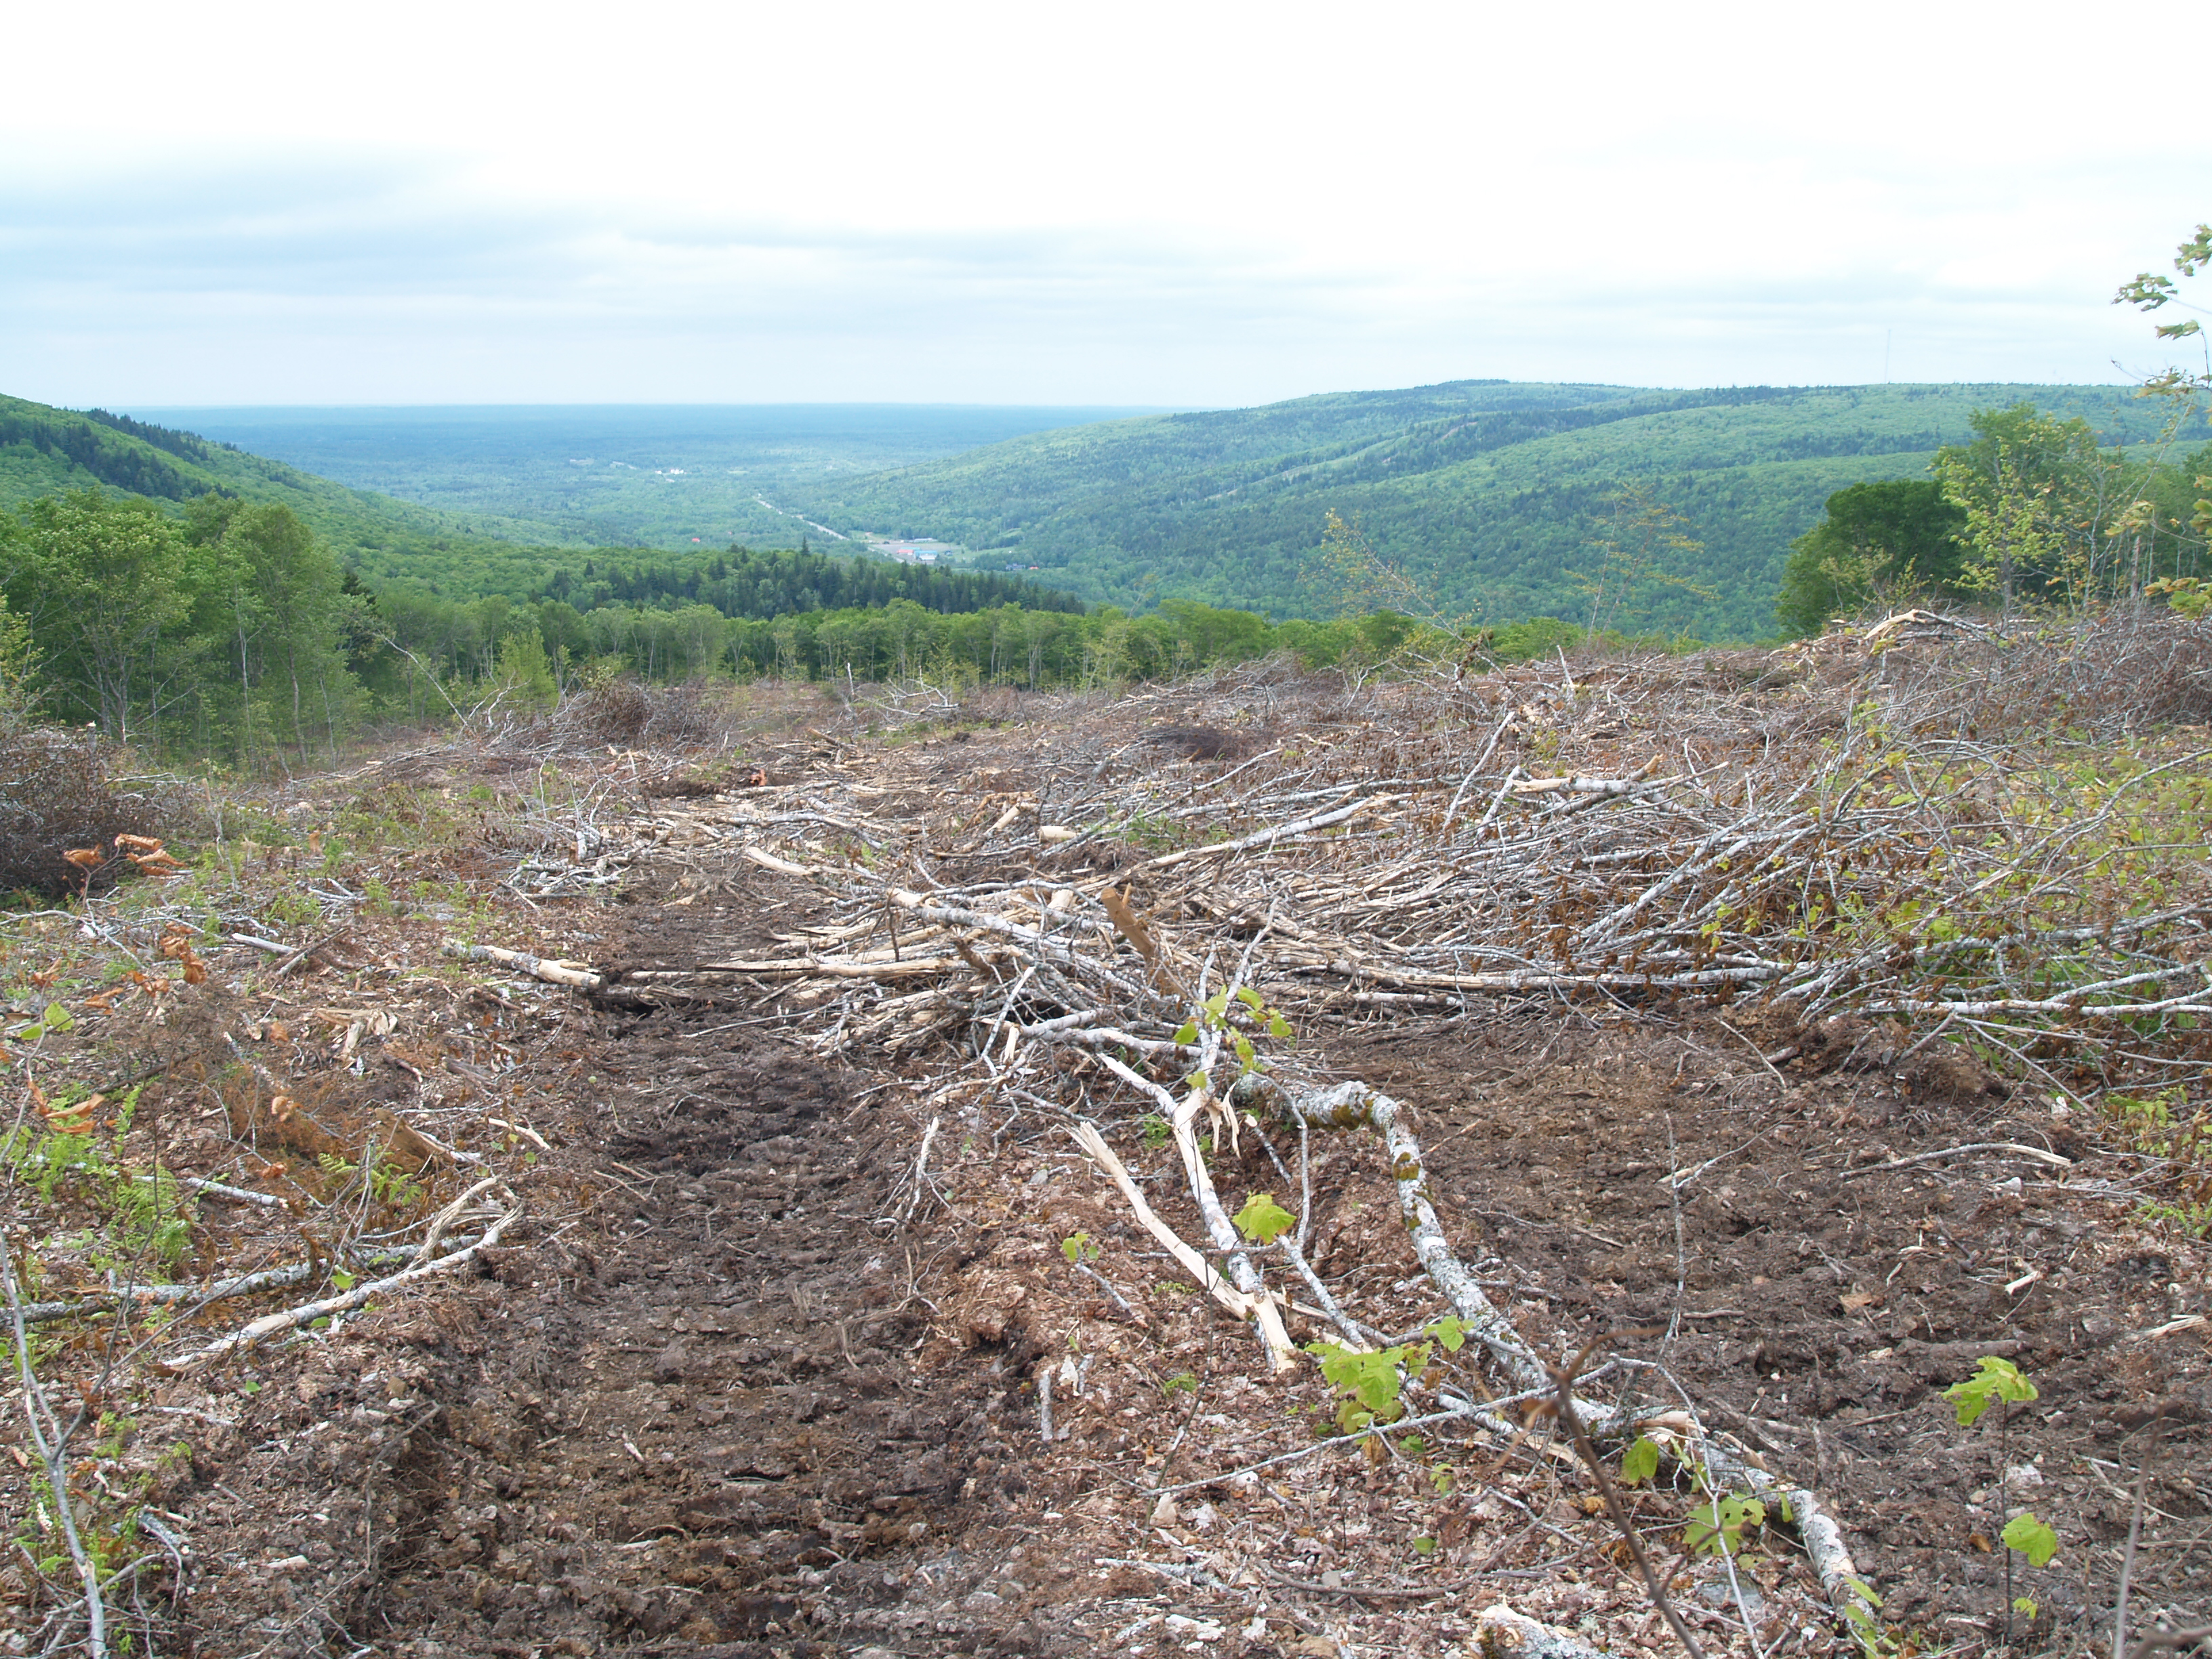 Such clear cutting did not bode well for plans to develop Wentworth Valley into an all-year eco-tourism destination. Photo by Joan Baxter